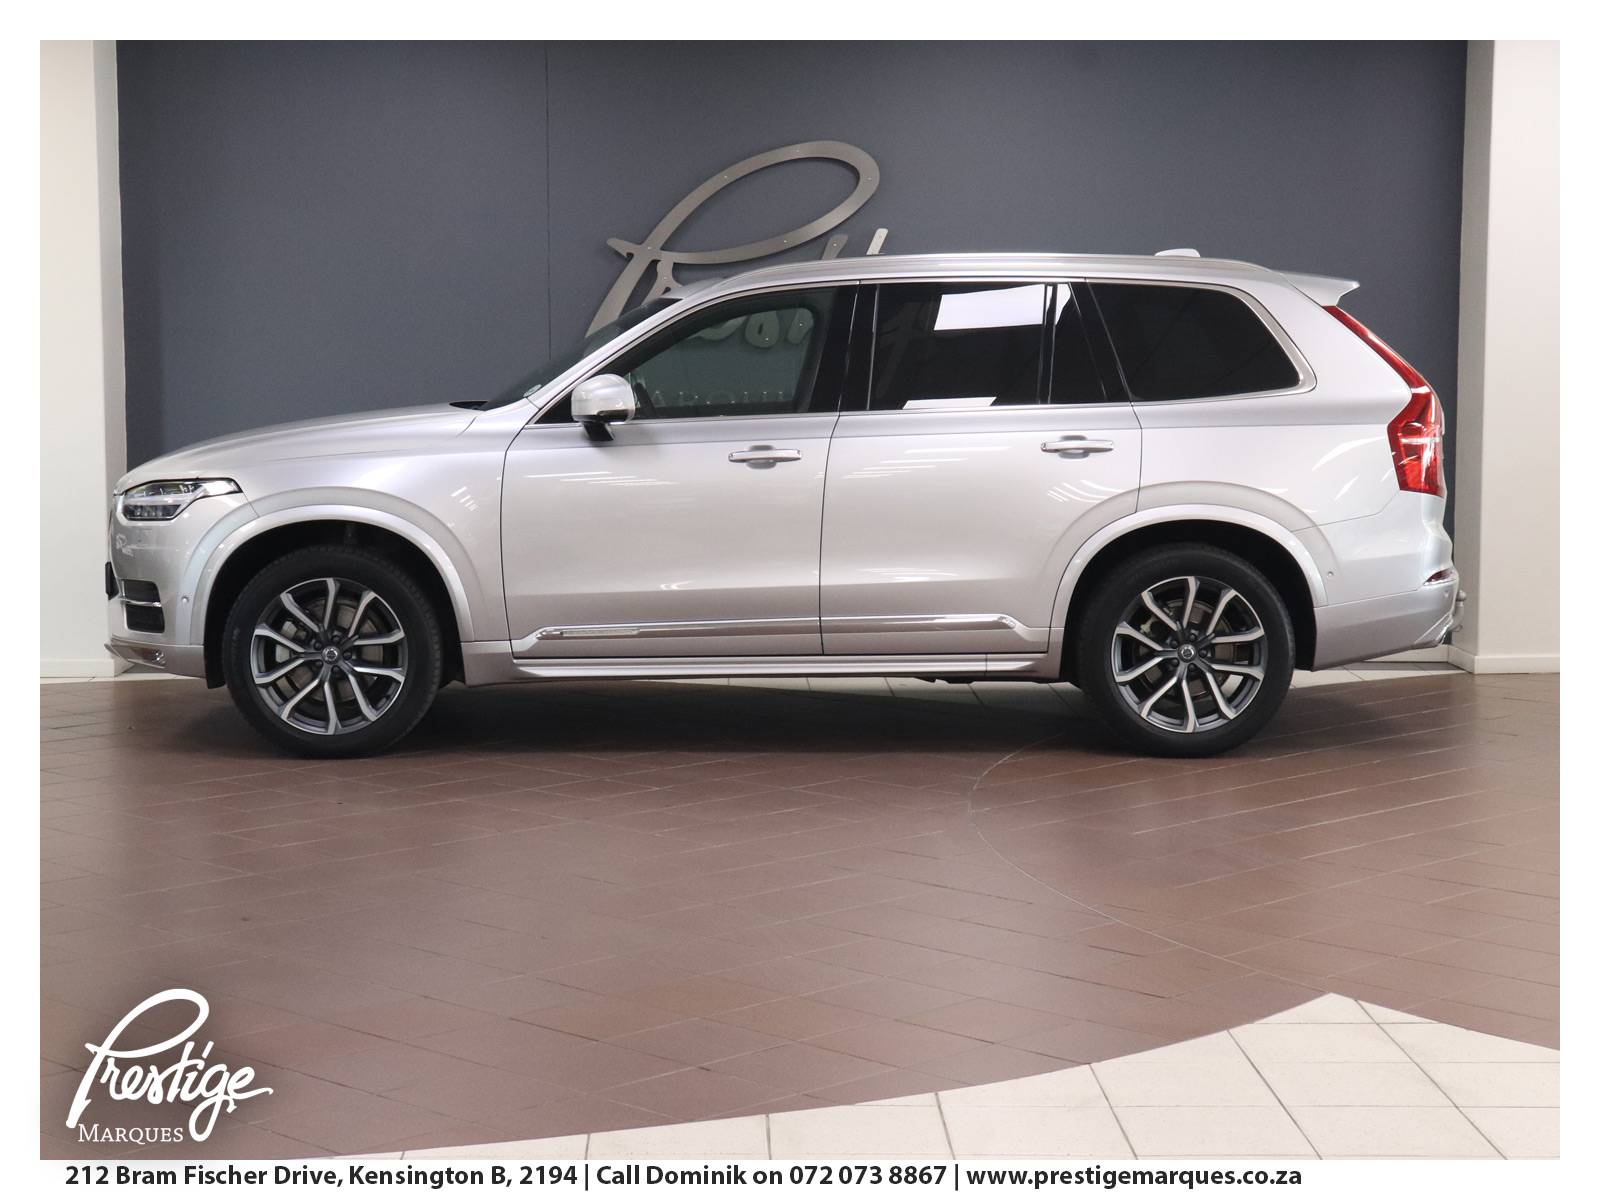 Volvo-XC90-D5-Inscription-Prestige-Marques-Randburg-Sandton-5